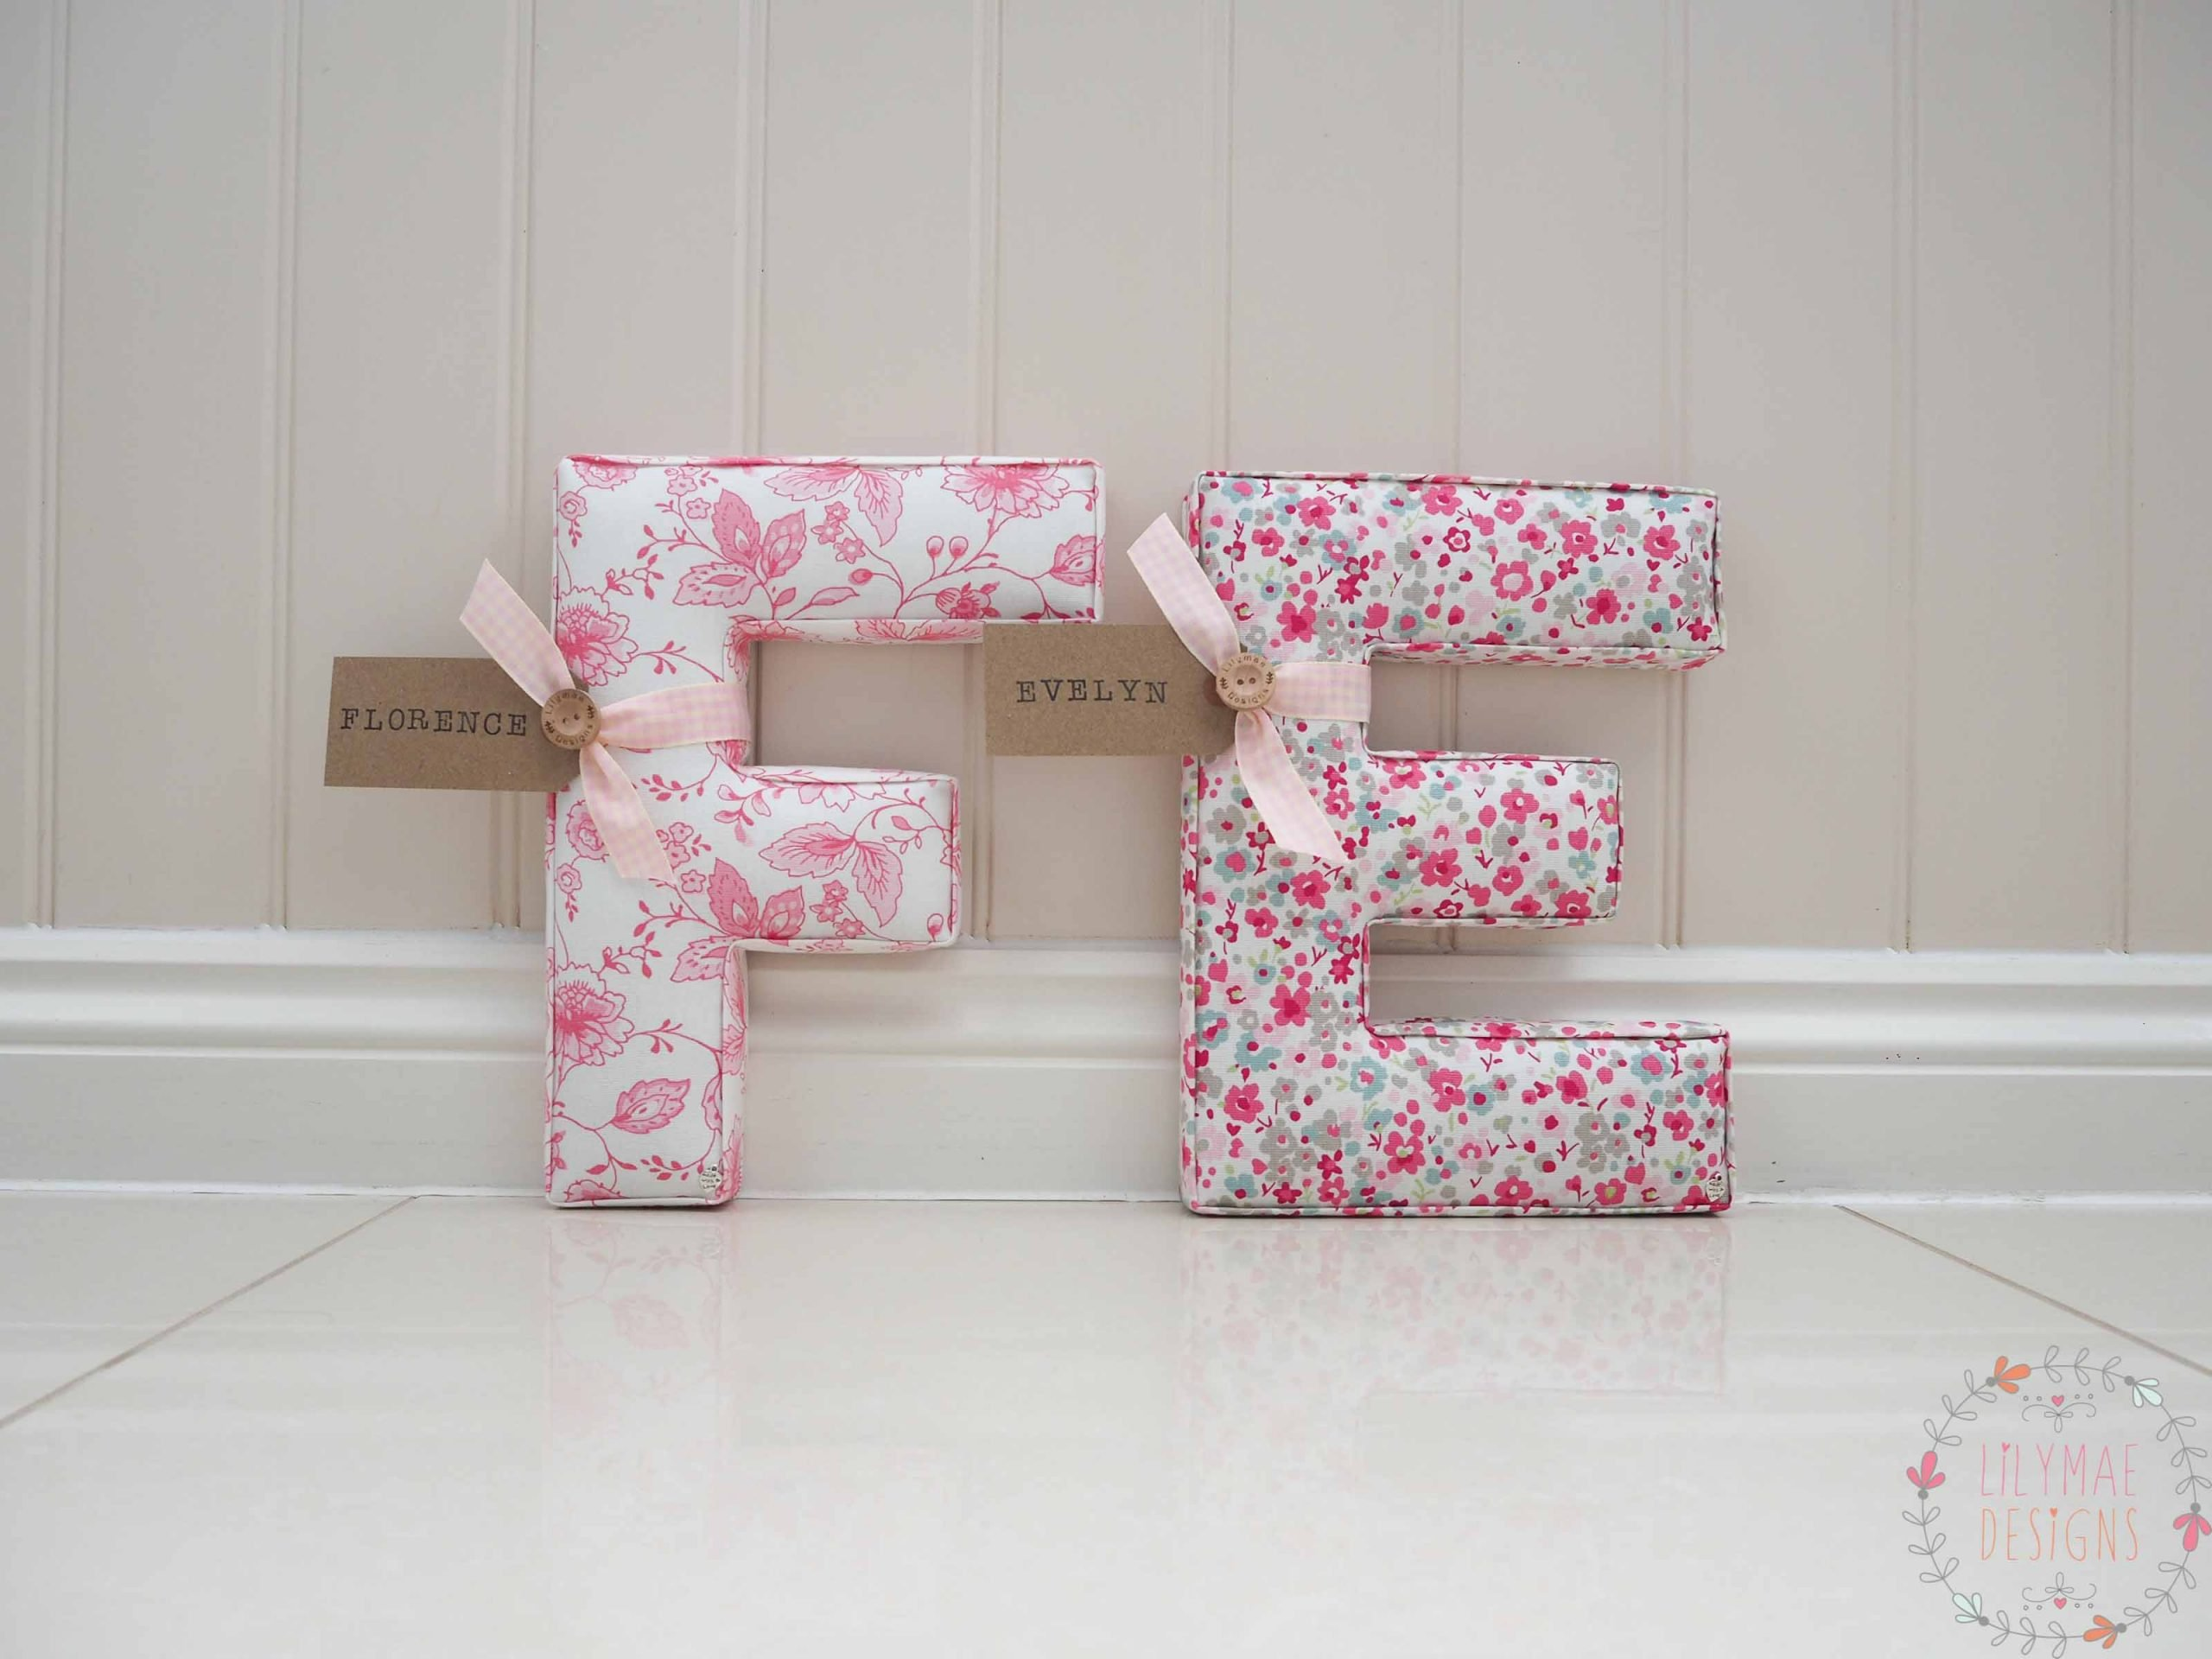 Twins bedroom letters F & E Florence and Evelyn Pink floral fabrics. Lilymae Designs Studio G Price List